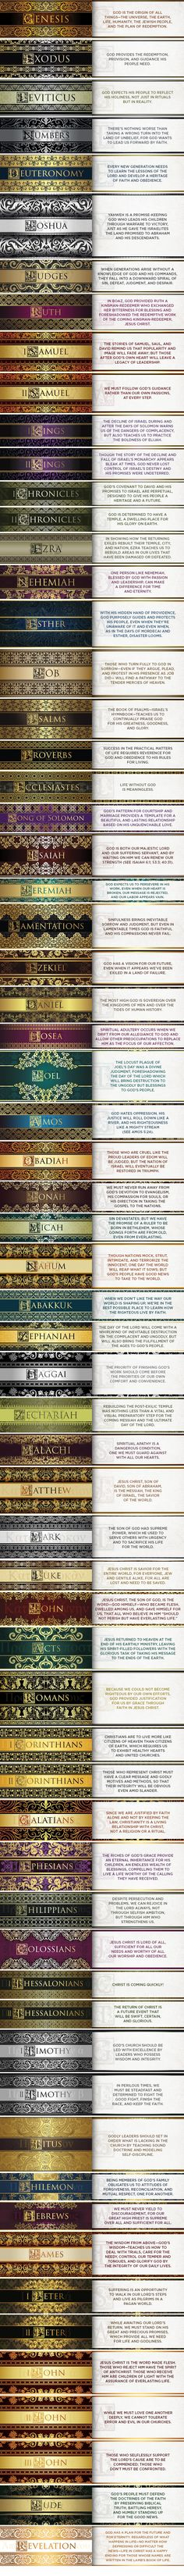 A great summary of each of the books in the bible, will certainly help guide reading